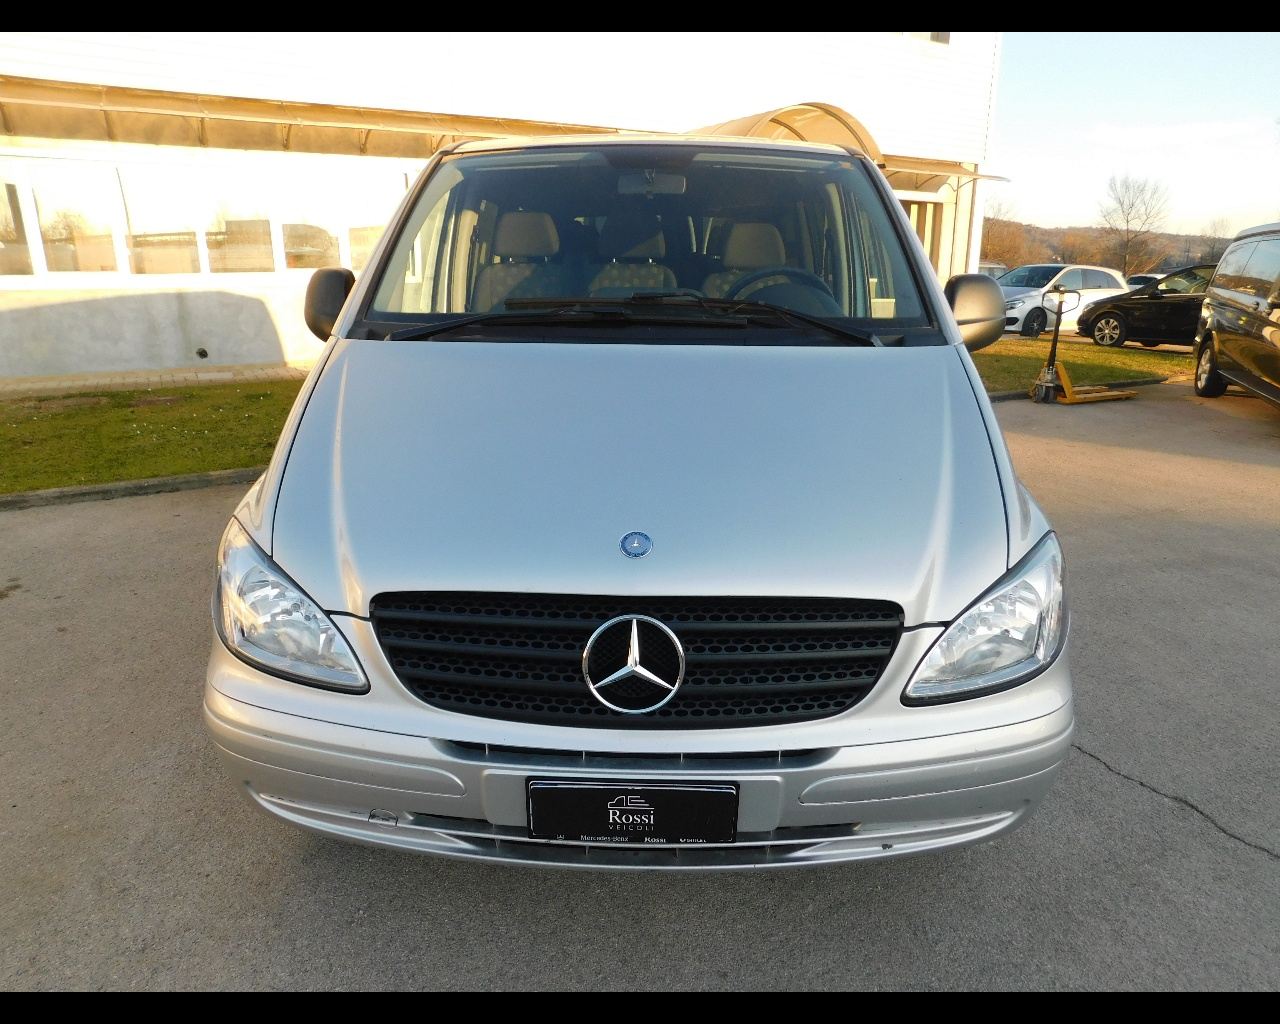 MERCEDES 115 CDI KOMBI LONG